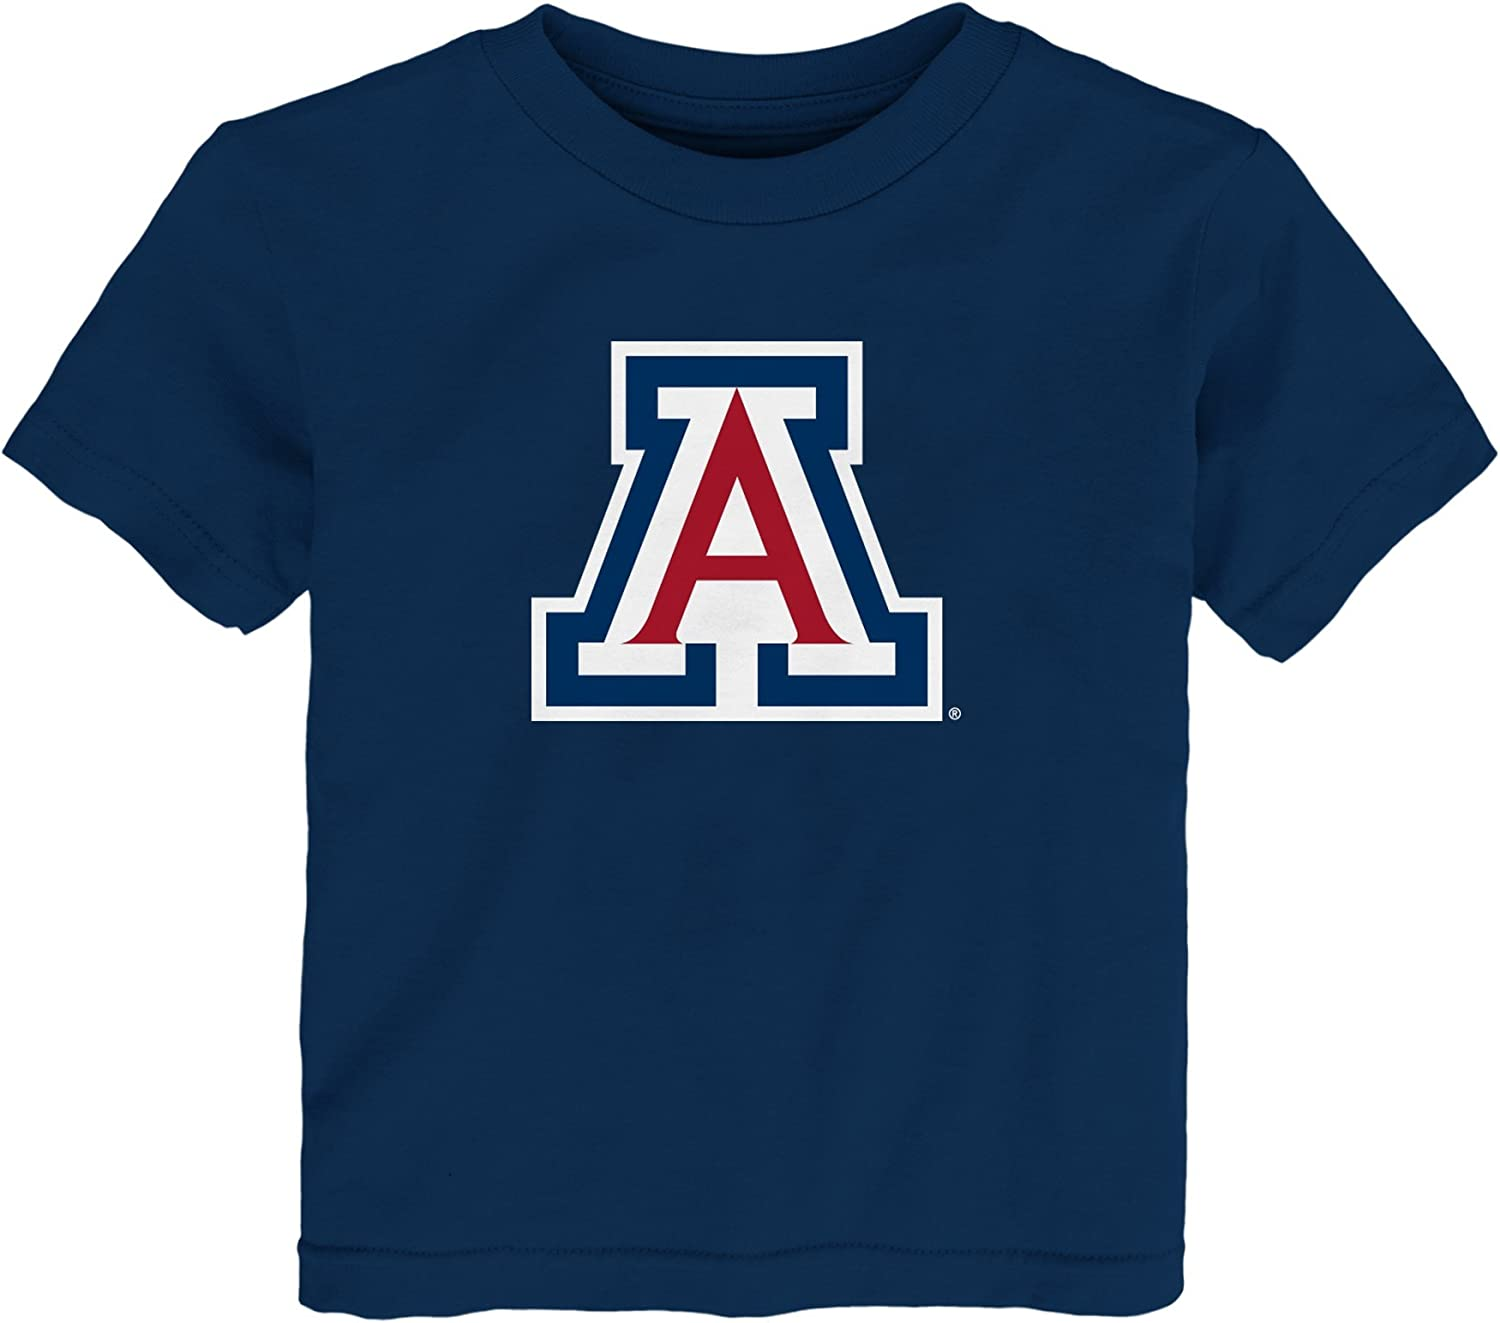 Heather Grey 3T Outerstuff NCAA Texas A/&M Aggies Toddler Team Property Short Sleeve Tee